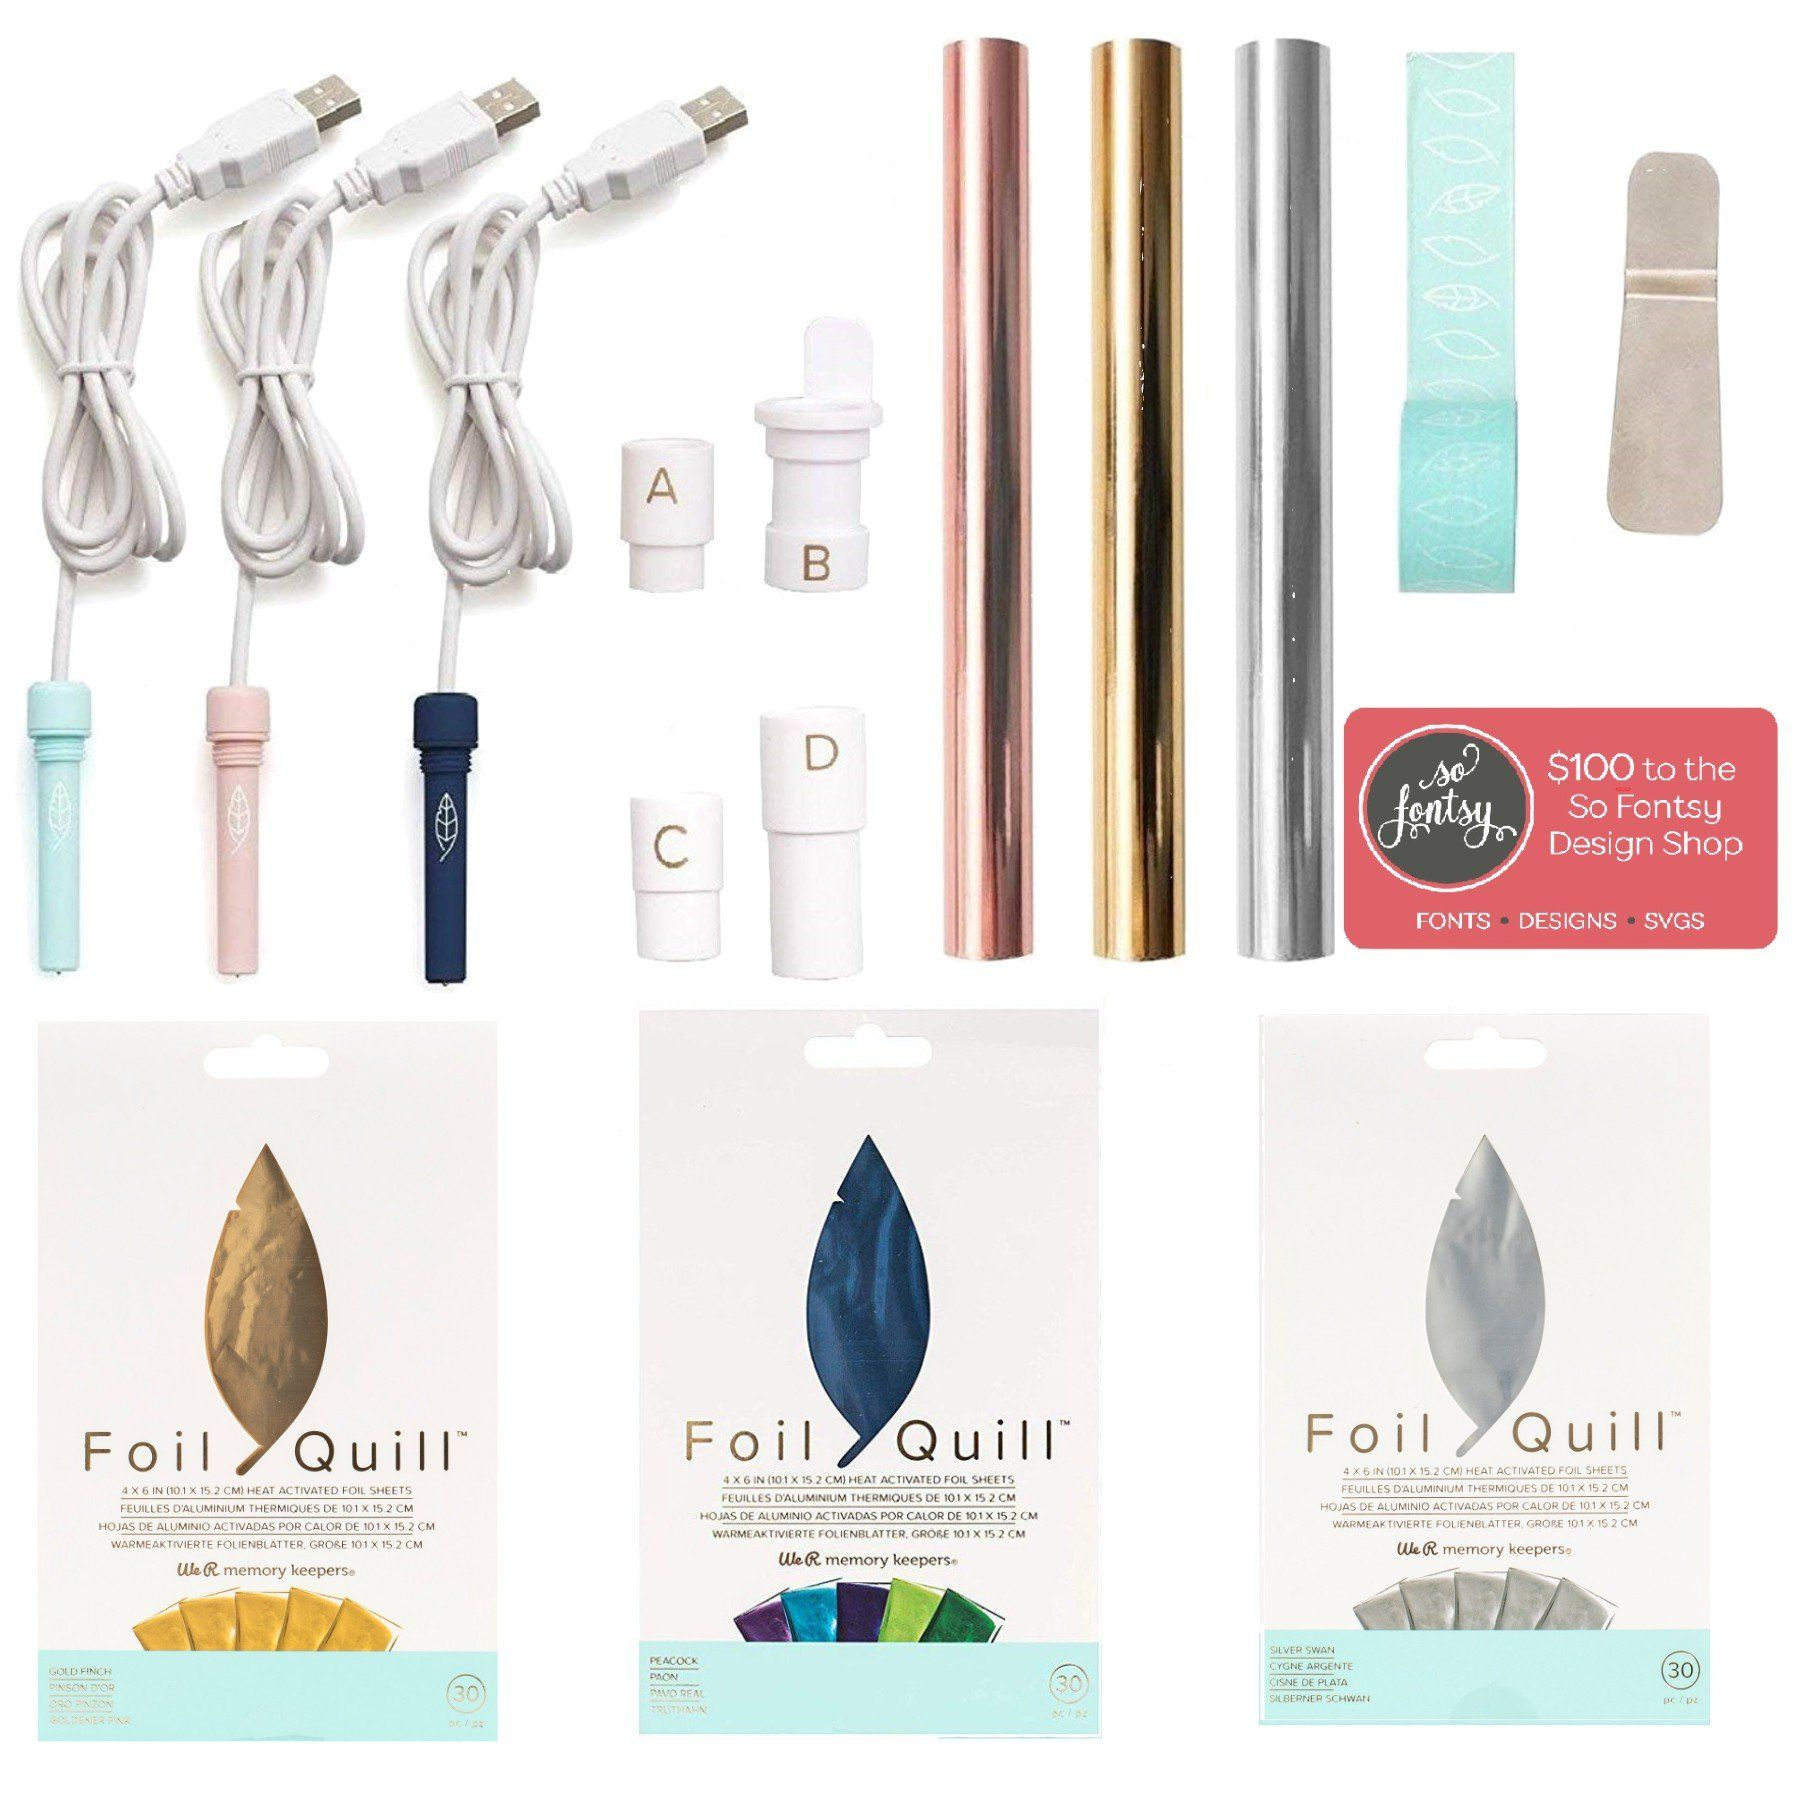 Foil Quill All In One Bundle 3 Foil Sets 3 Quills Adapters Rolls Tape Design Card Swing Design Cricut Foil Quilling